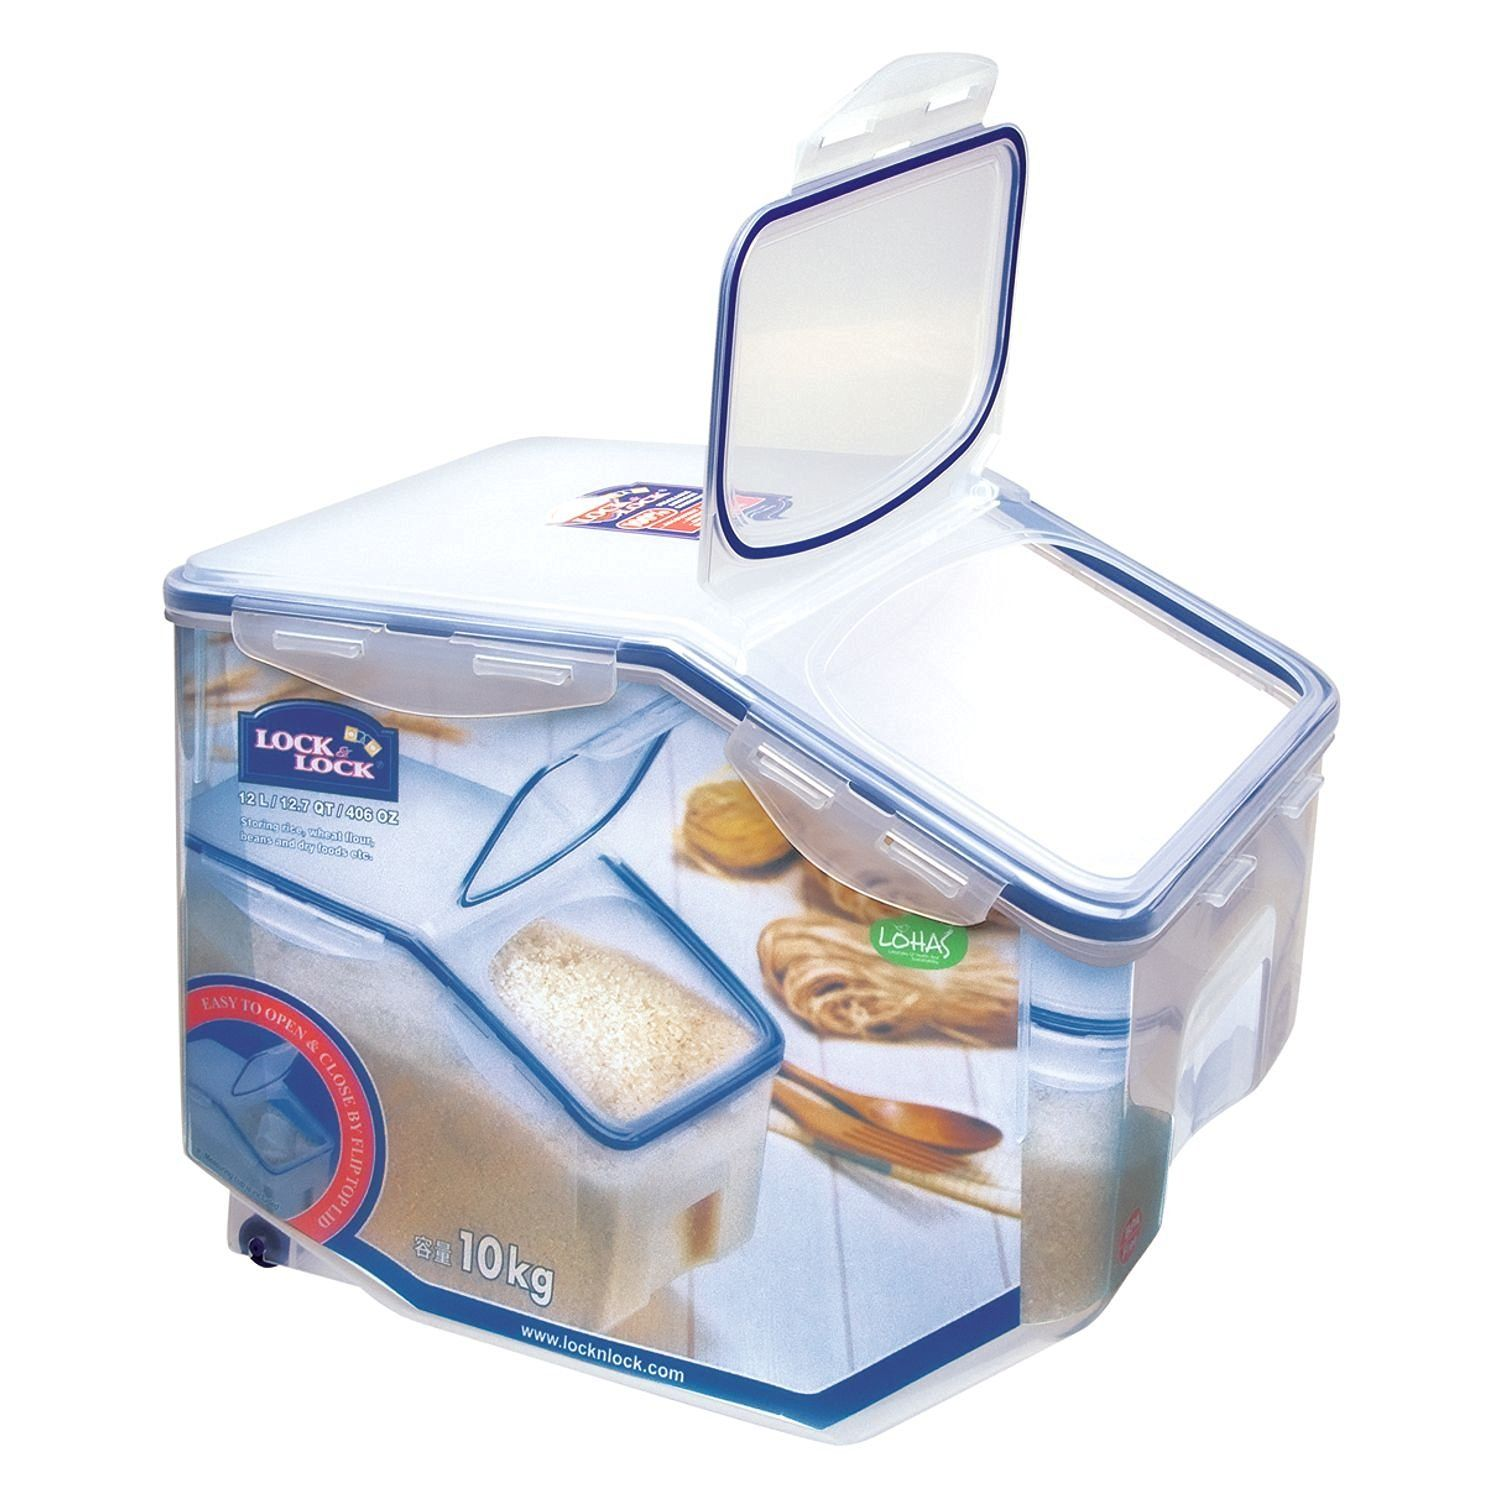 Lock Amp Lock Kitchen Caddy Hpl510 Multi Use Food Container Box